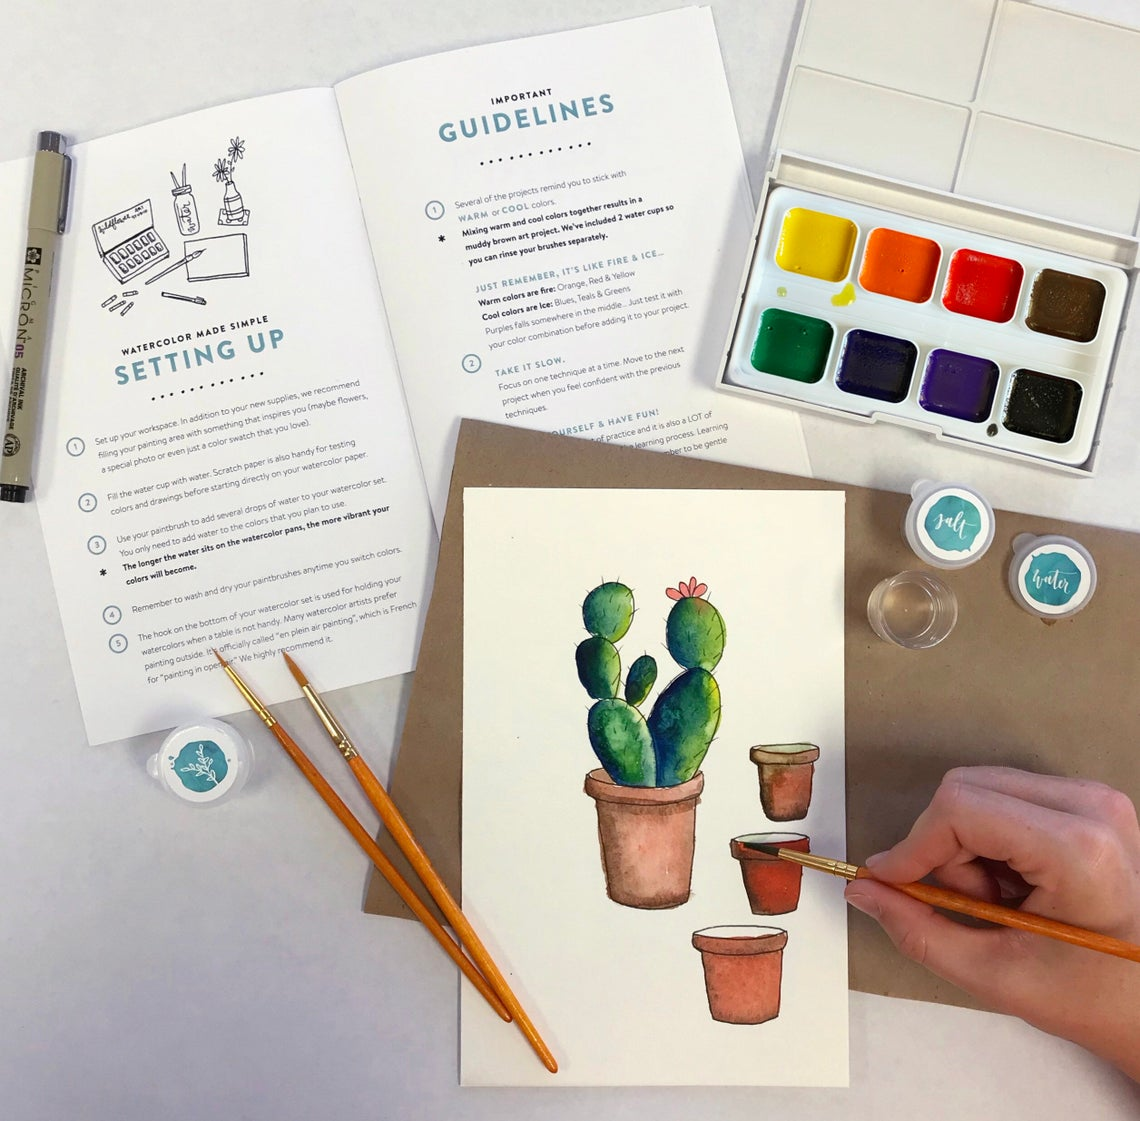 DIY Watercolor Kit for Beginners - Instruction Book & Supplies - Wildflower Art Studio Workshop-in-a-Box • For Kids, Teens, Adults